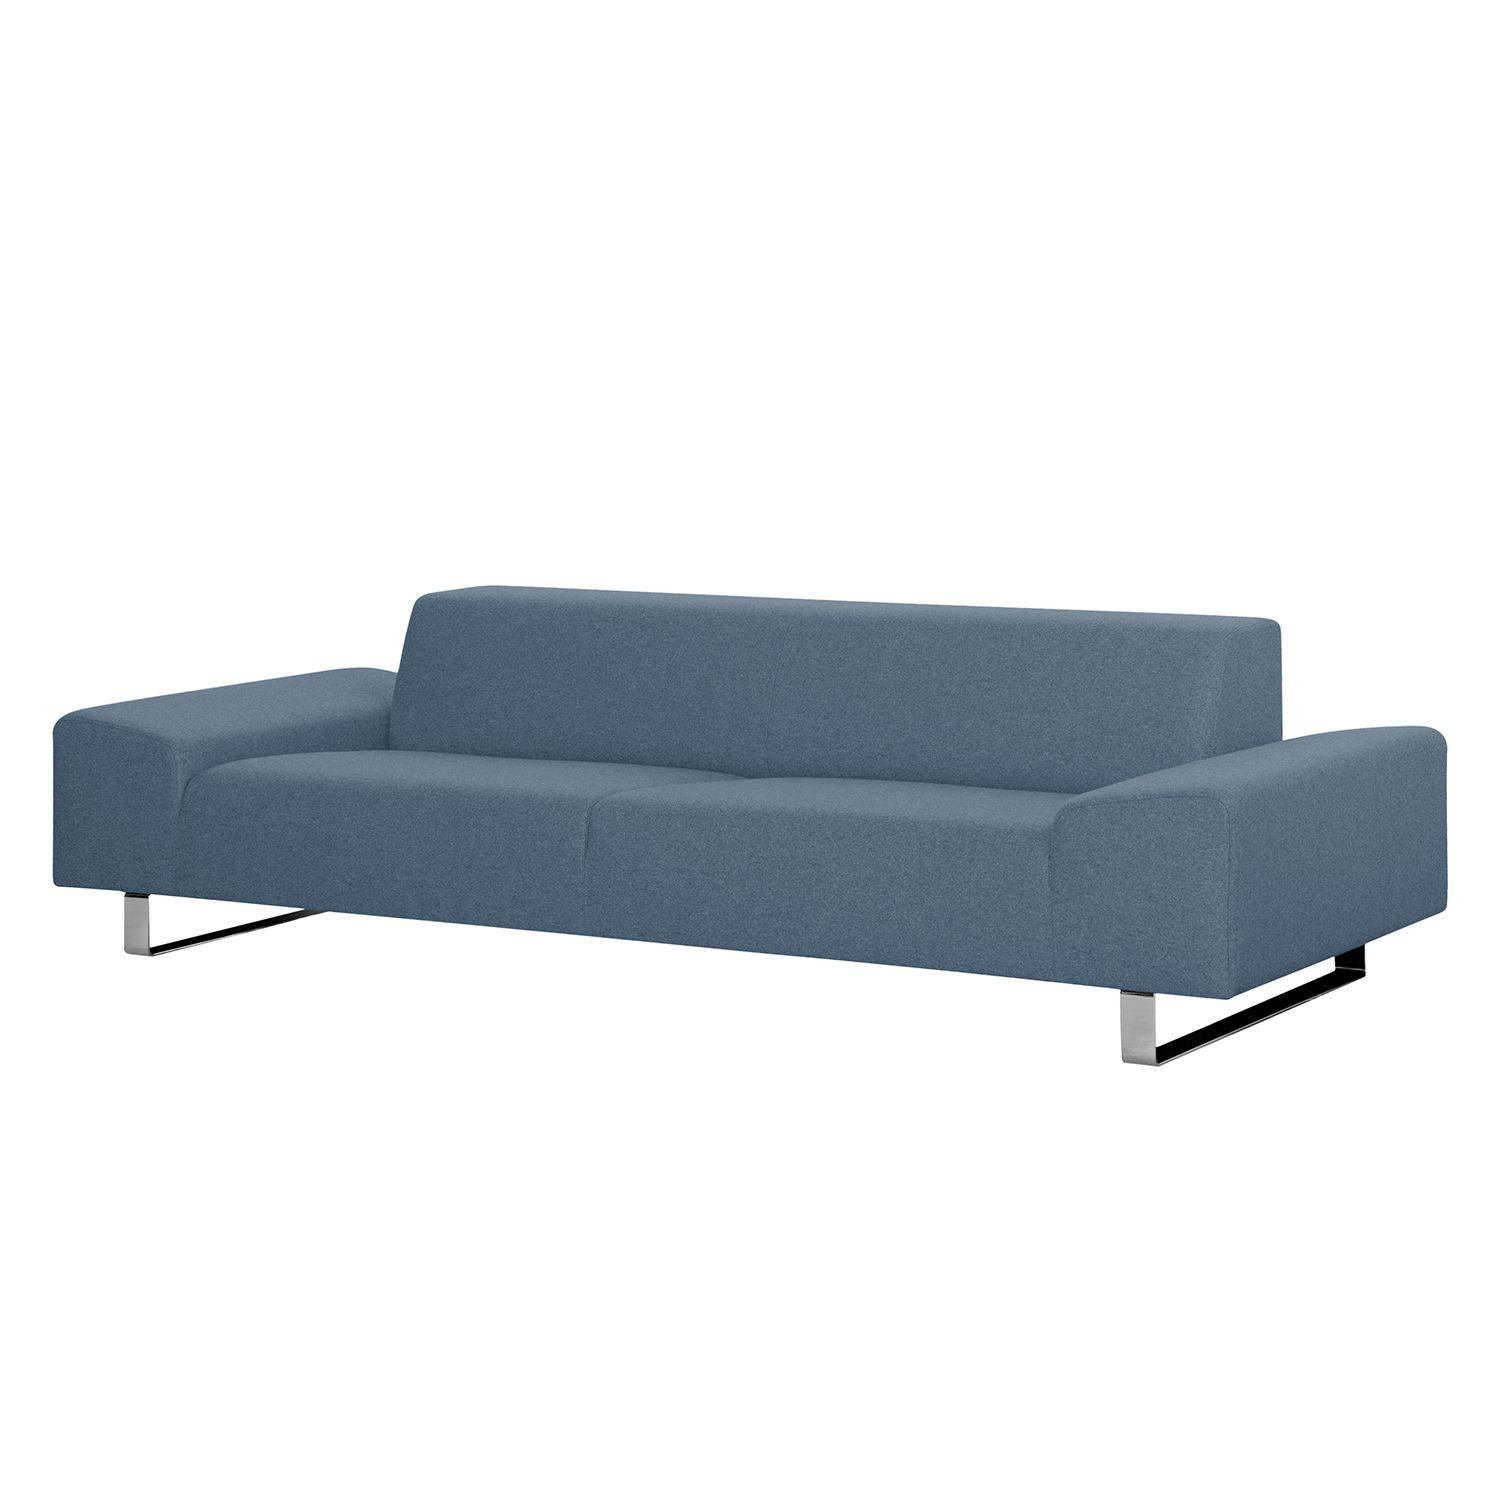 Interliving Ecksofa Sofa Hellblau Free Interliving Sofa Serie With Sofa